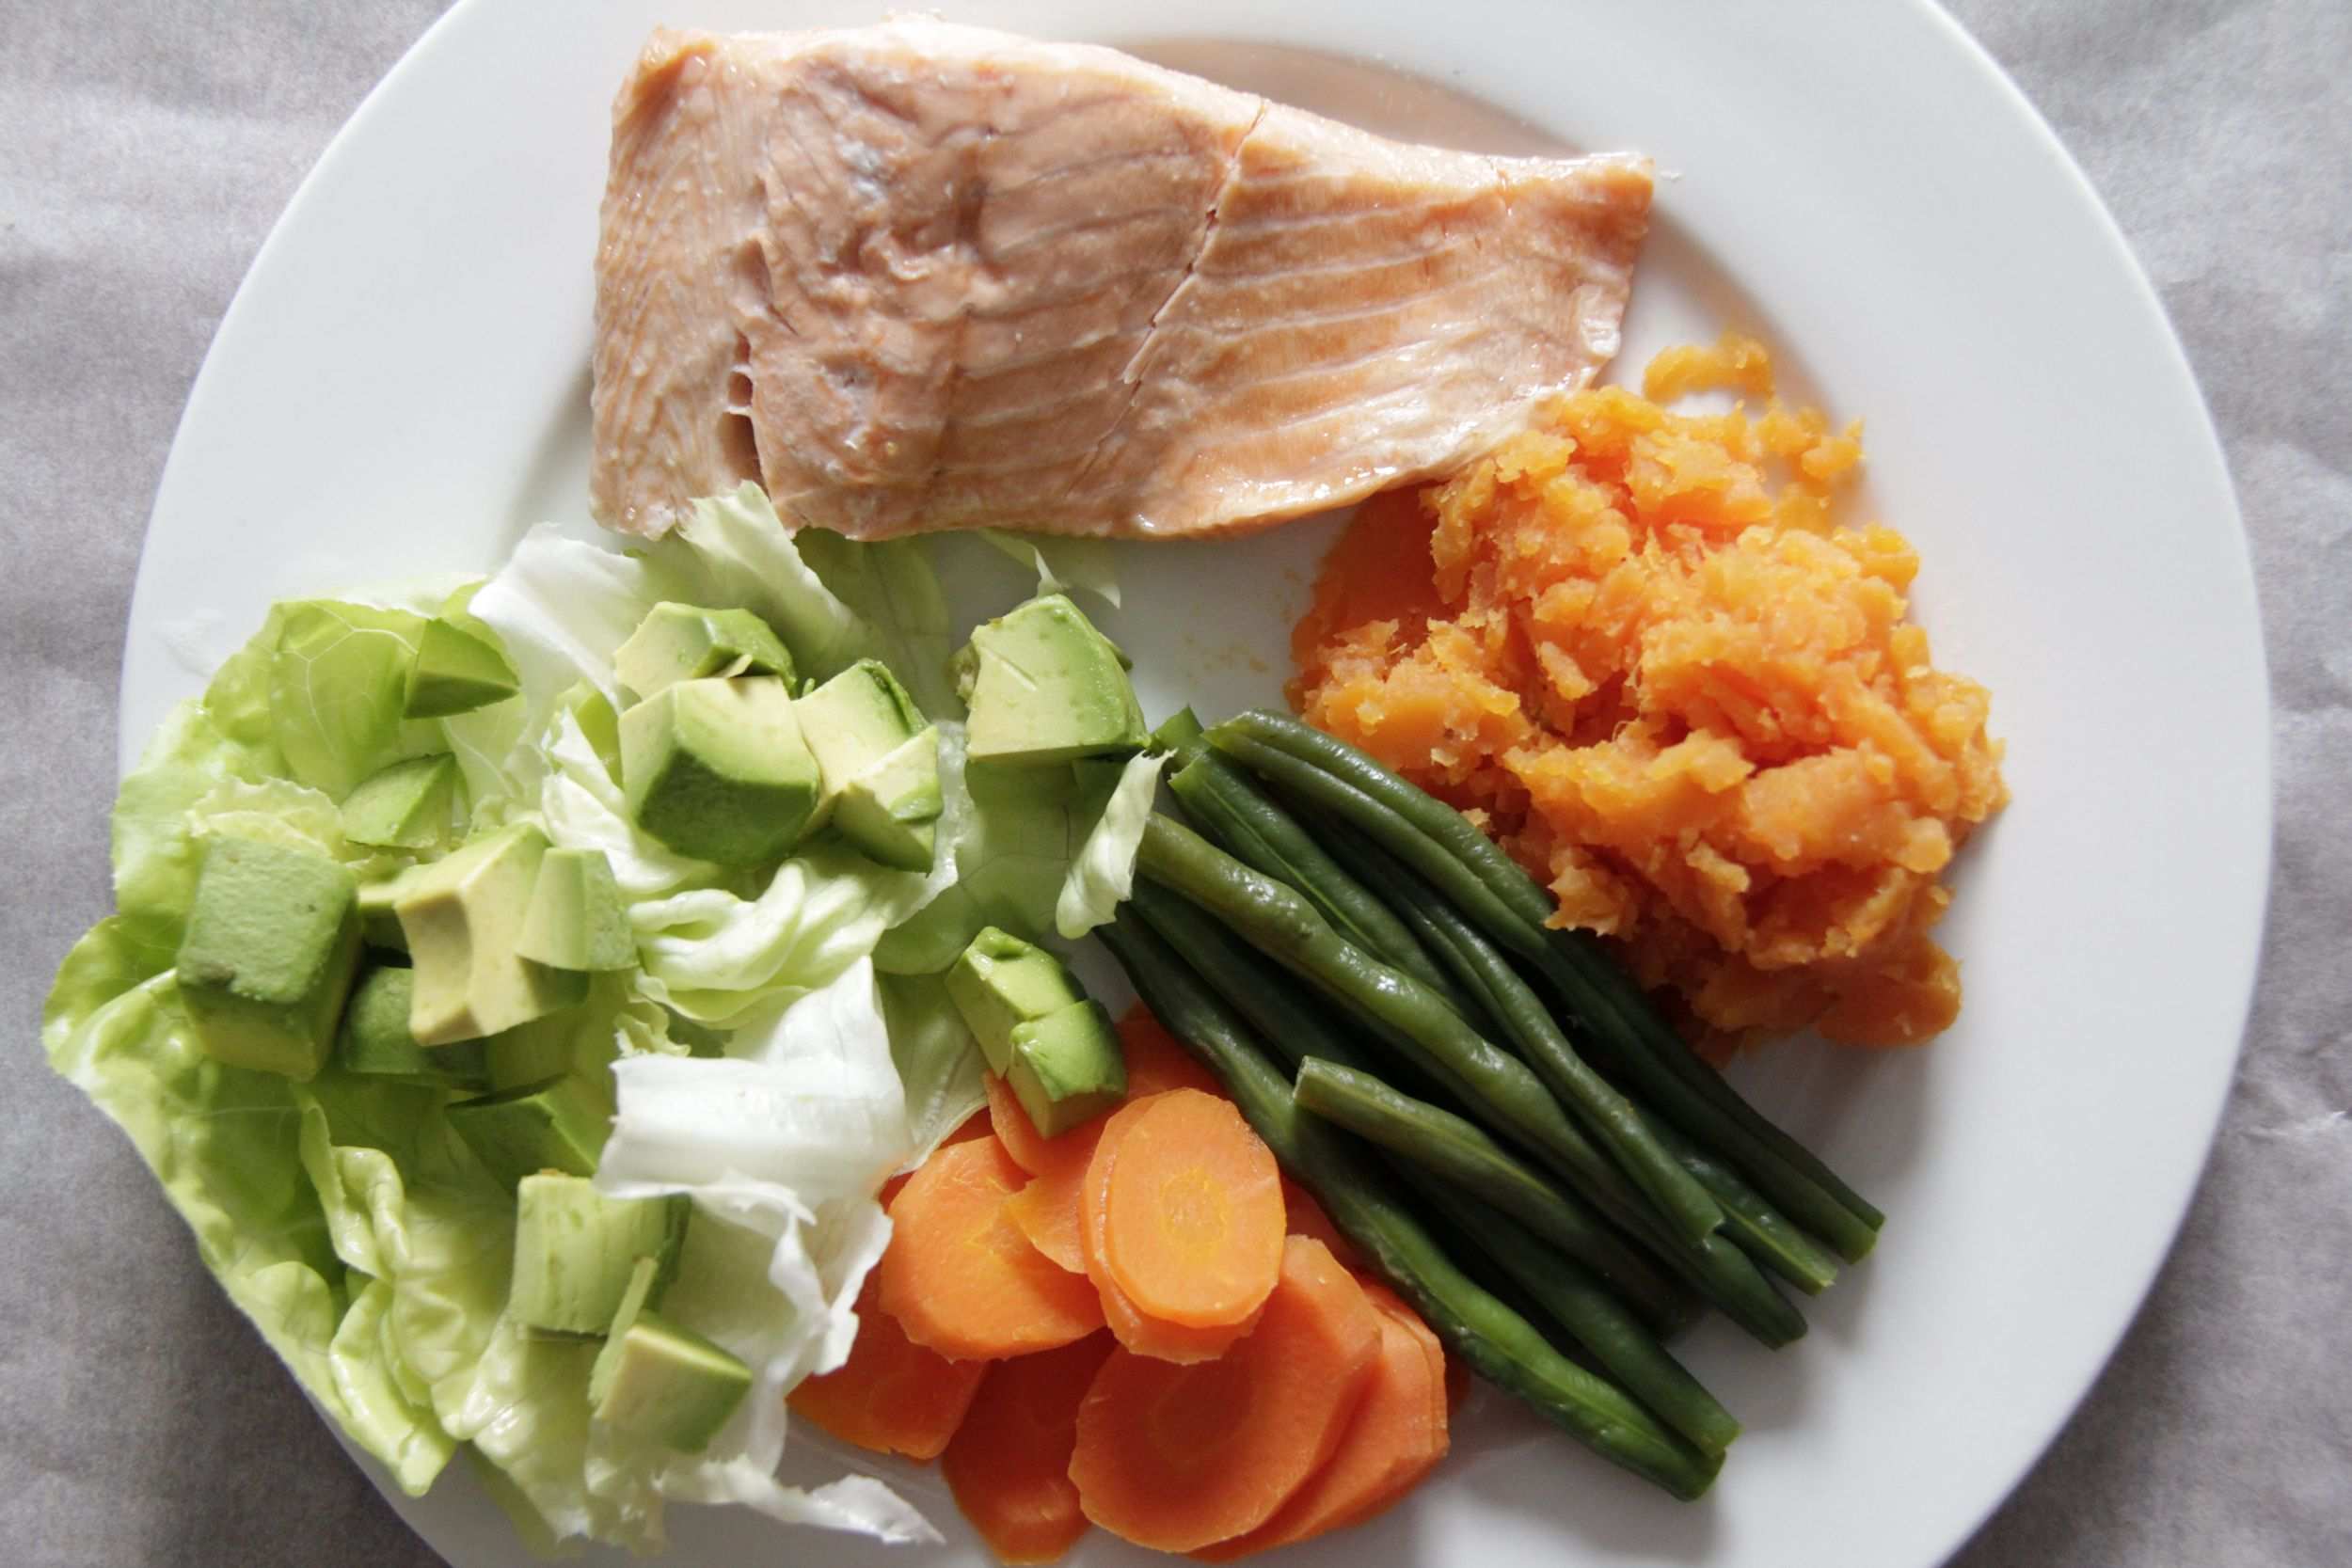 Perfect summer meal - Salmon, steamed vegetables and greens